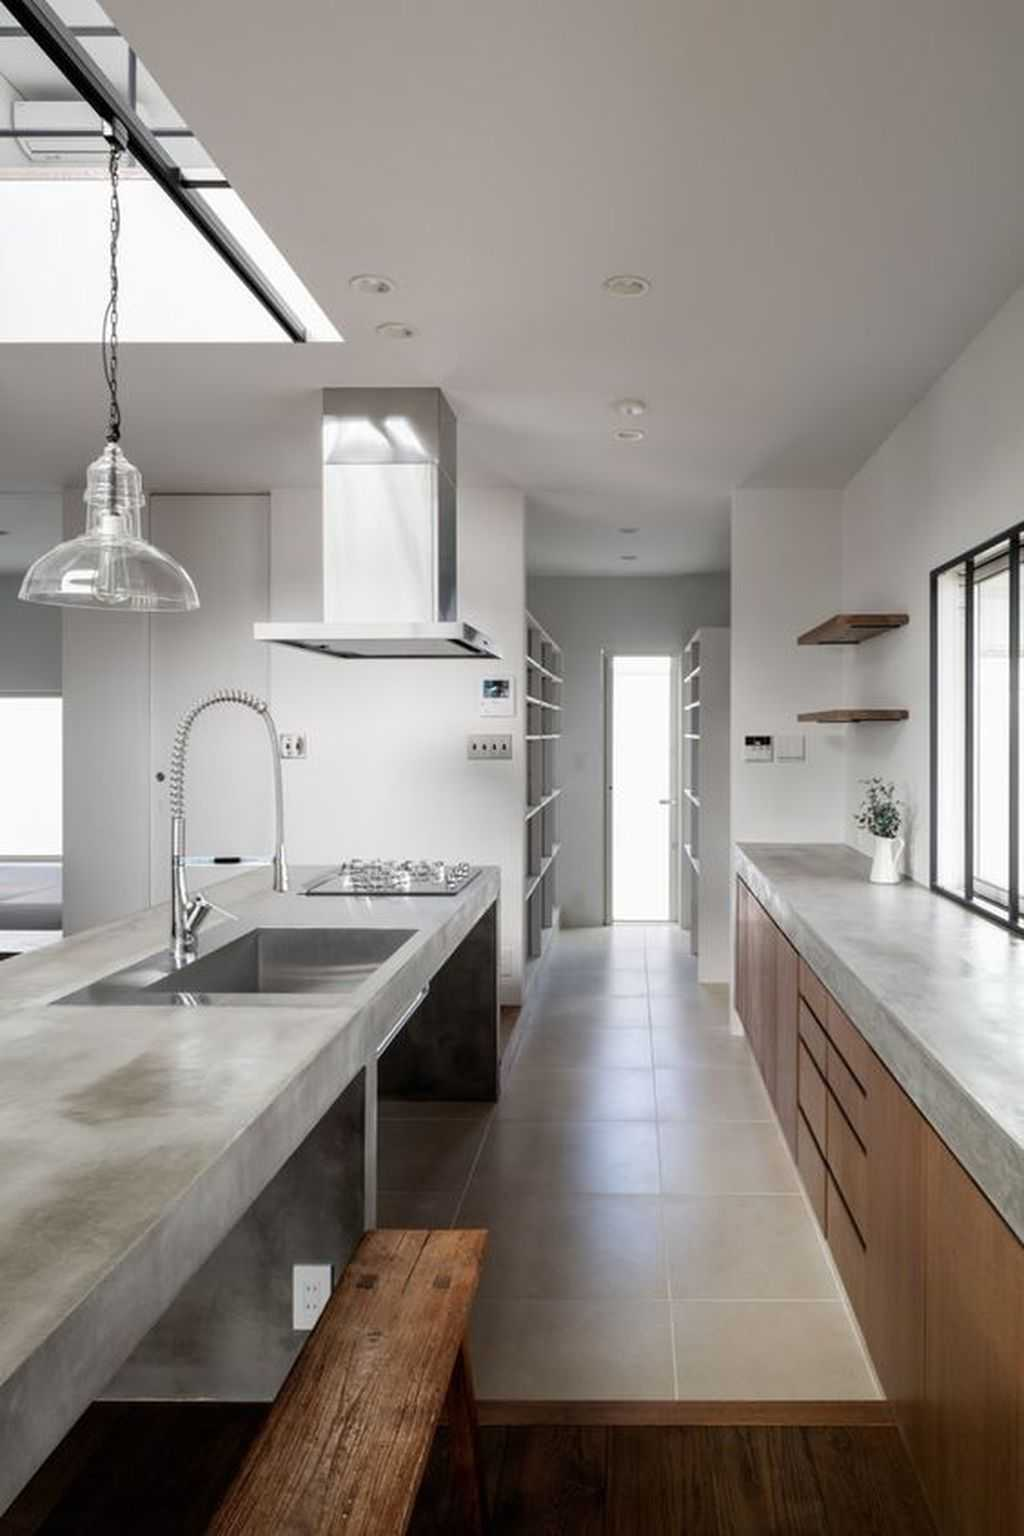 Minimalist Kitchen With Sleek Wooden Cabinets And A Concrete Countertop Plus A Concrete Kitchen Island